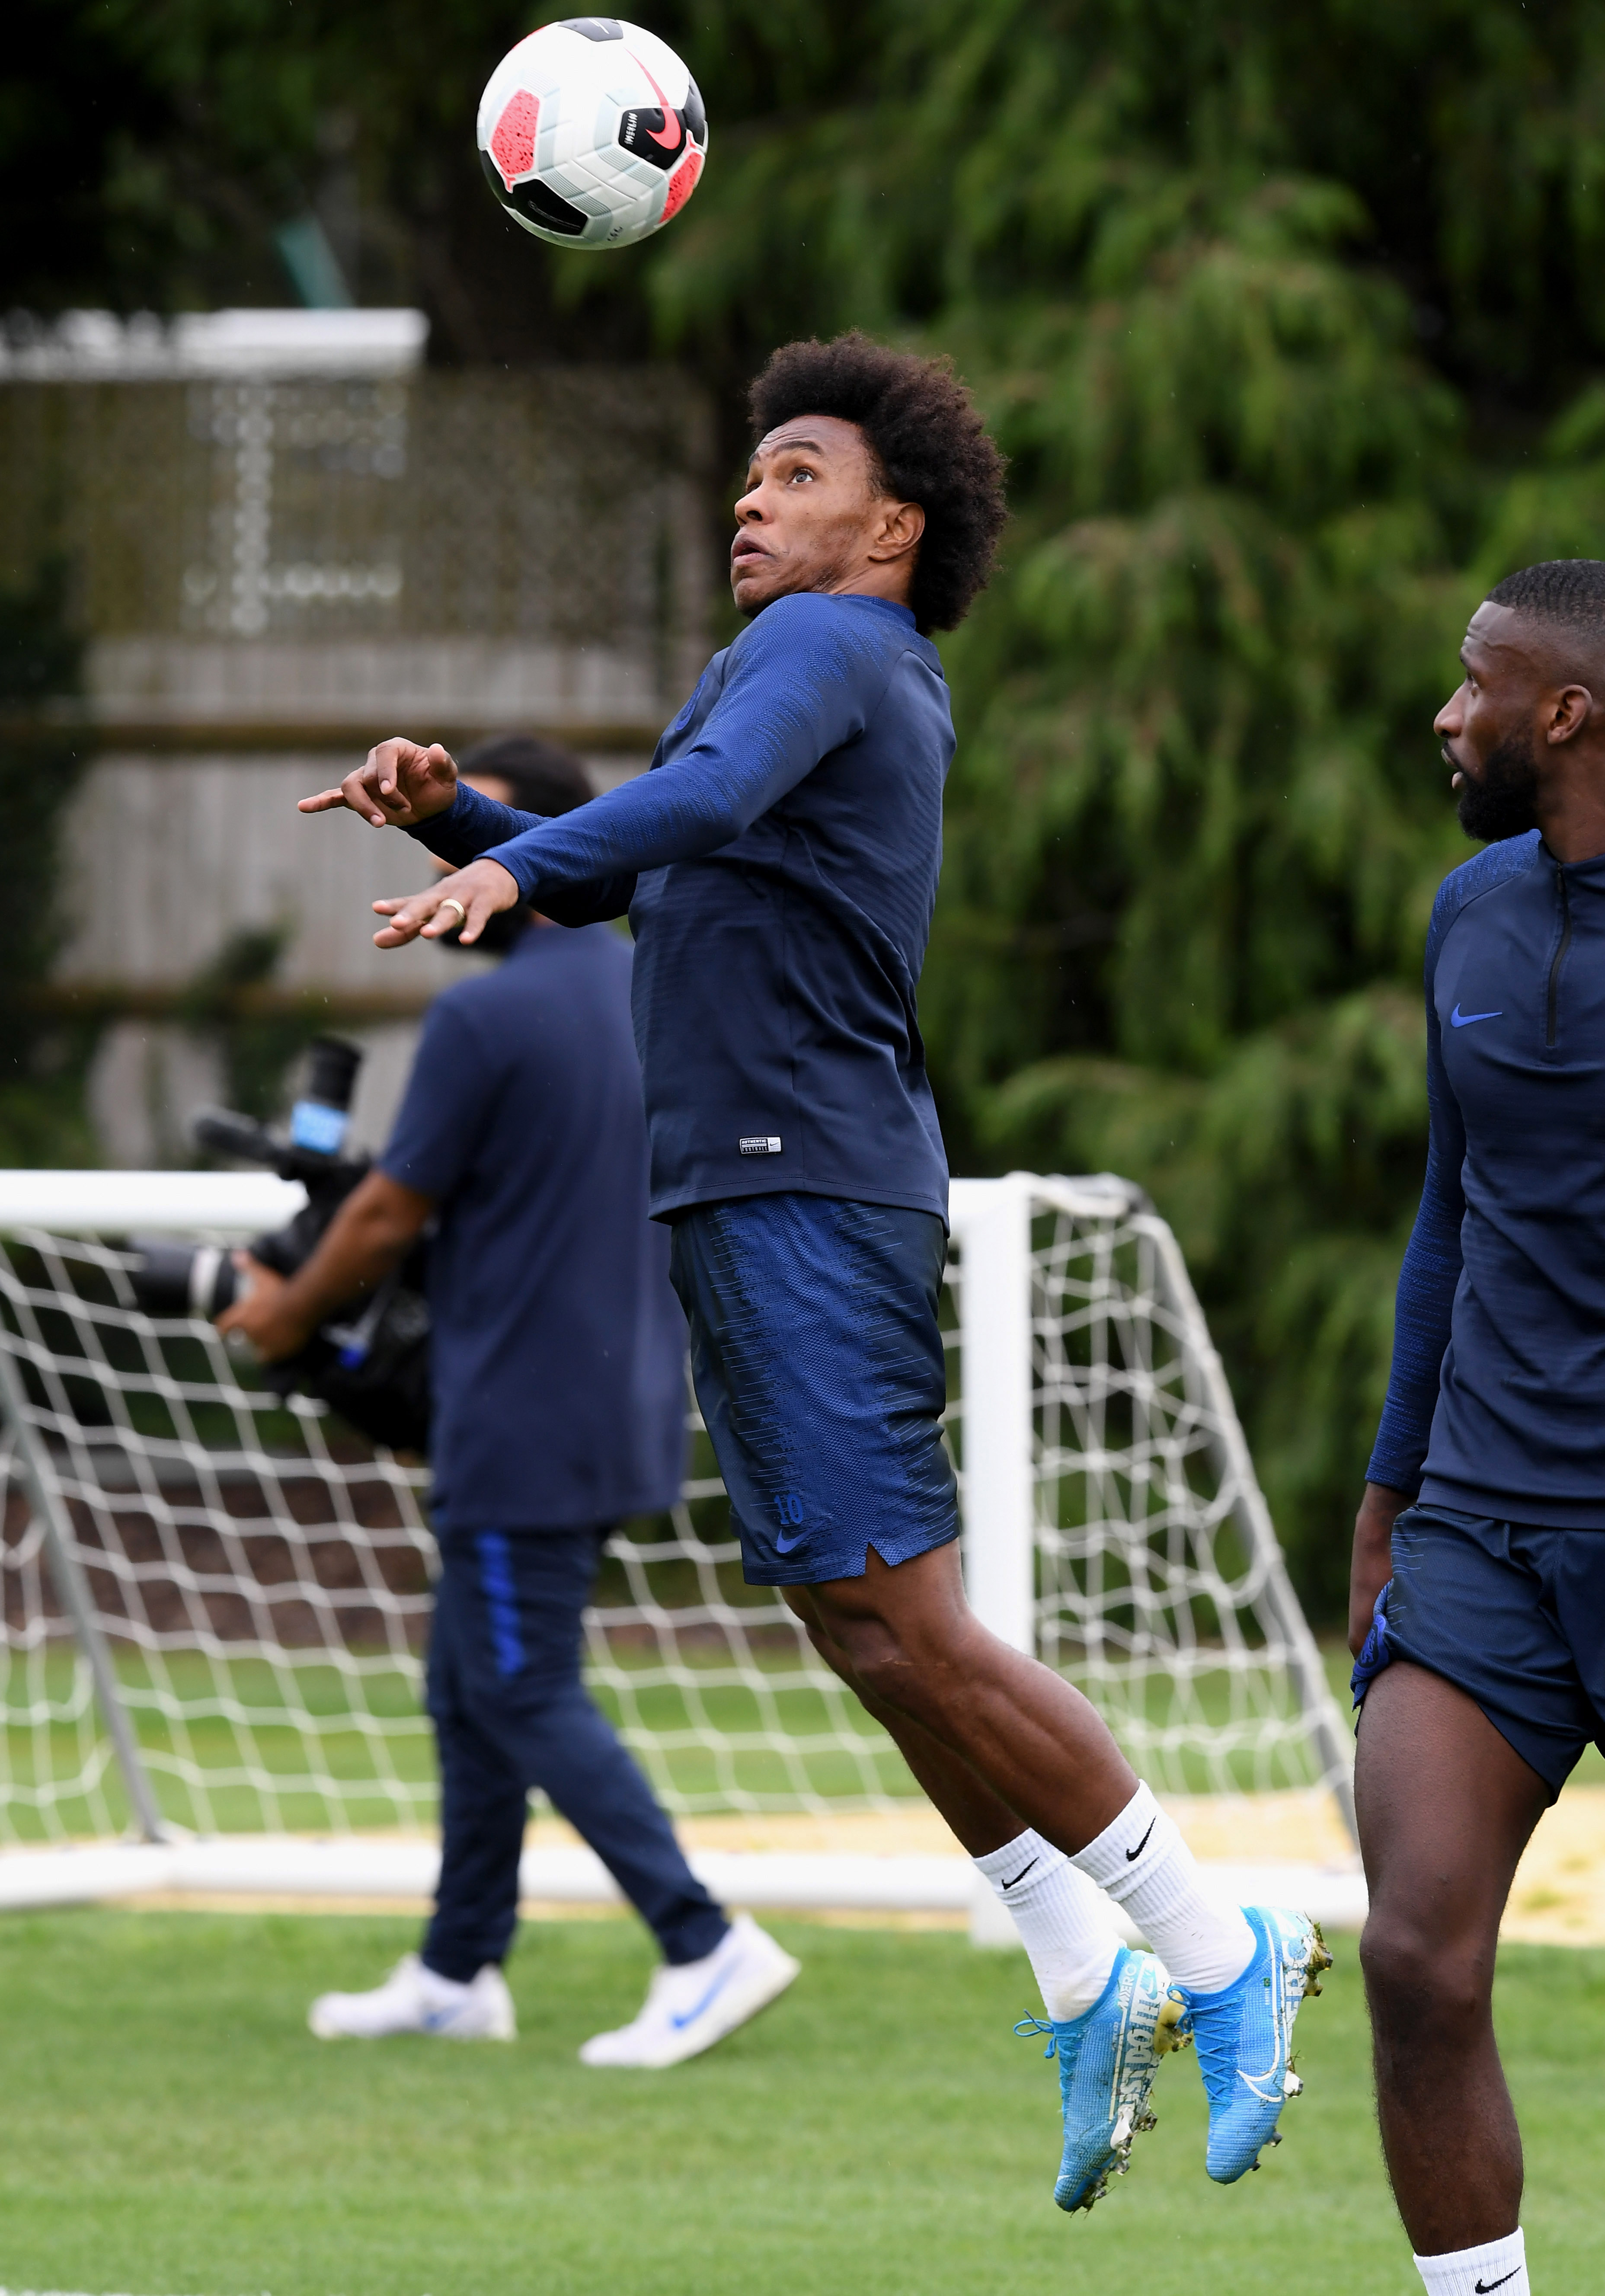 Rudiger, Willian in contention for Leicester; Hudson-Odoi, James expected after international break